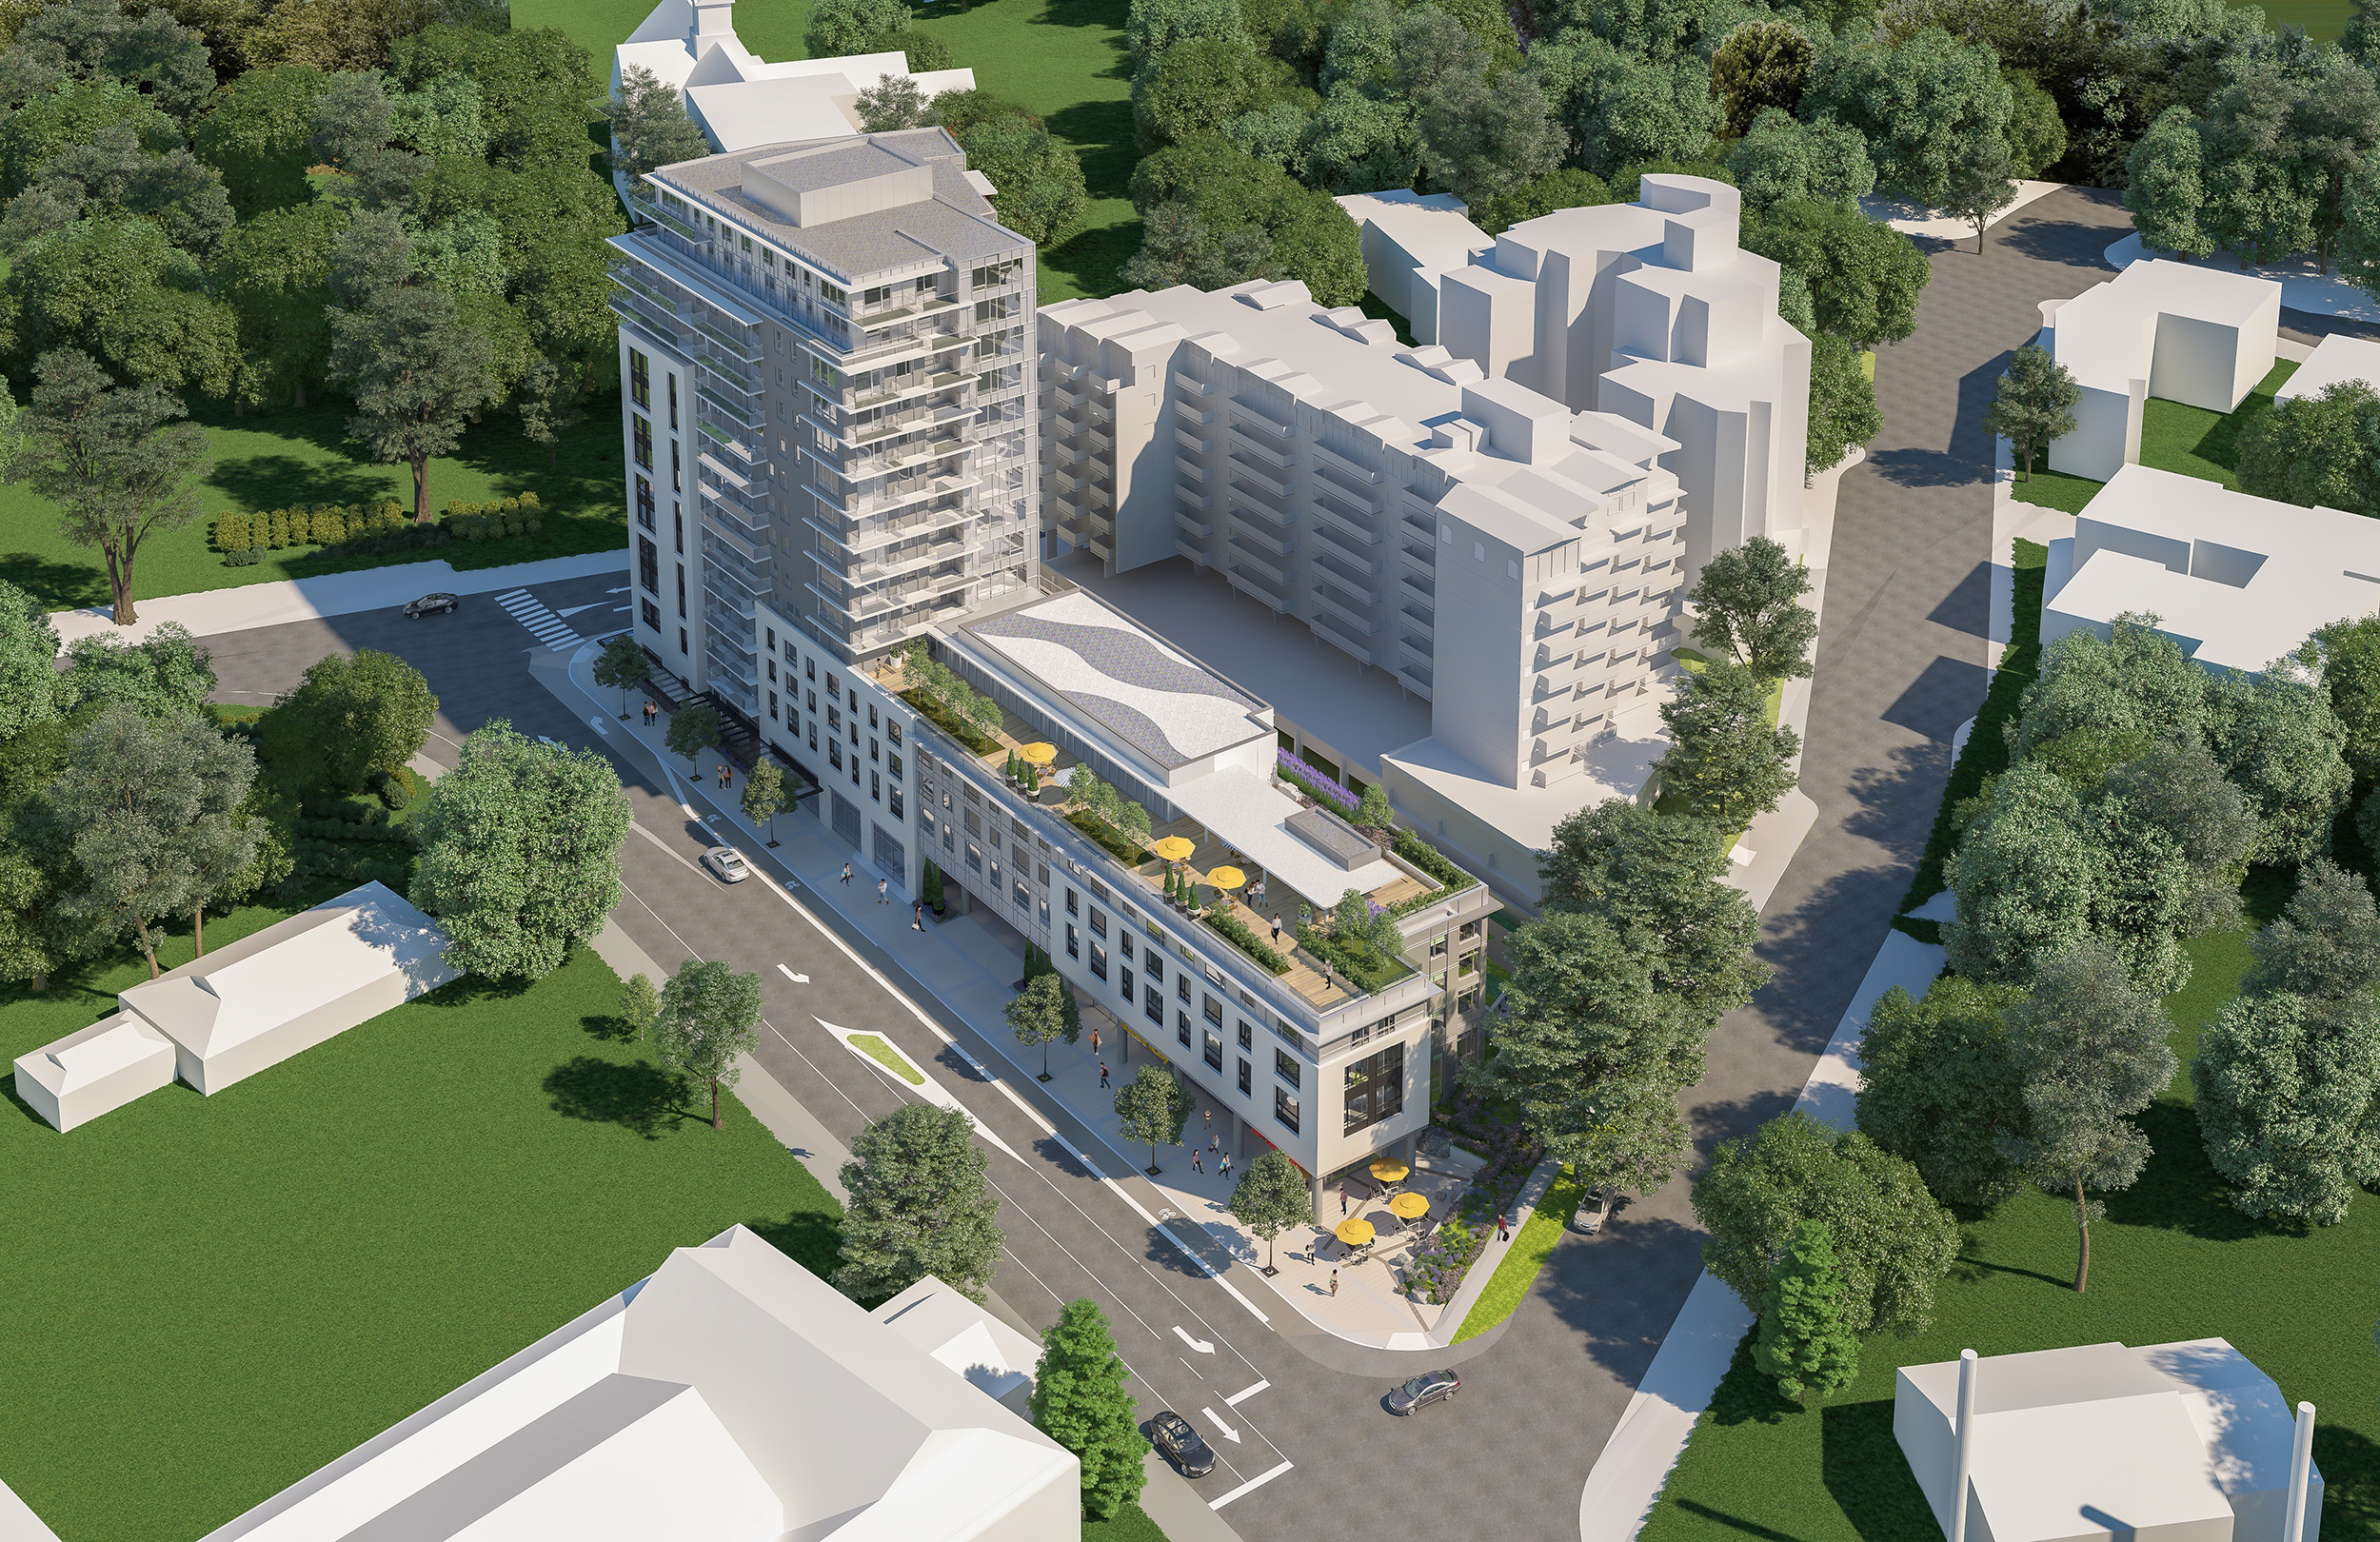 Architectural design of the seniors housing project approved for Belleville Street. Image courtesy of Concert Properties